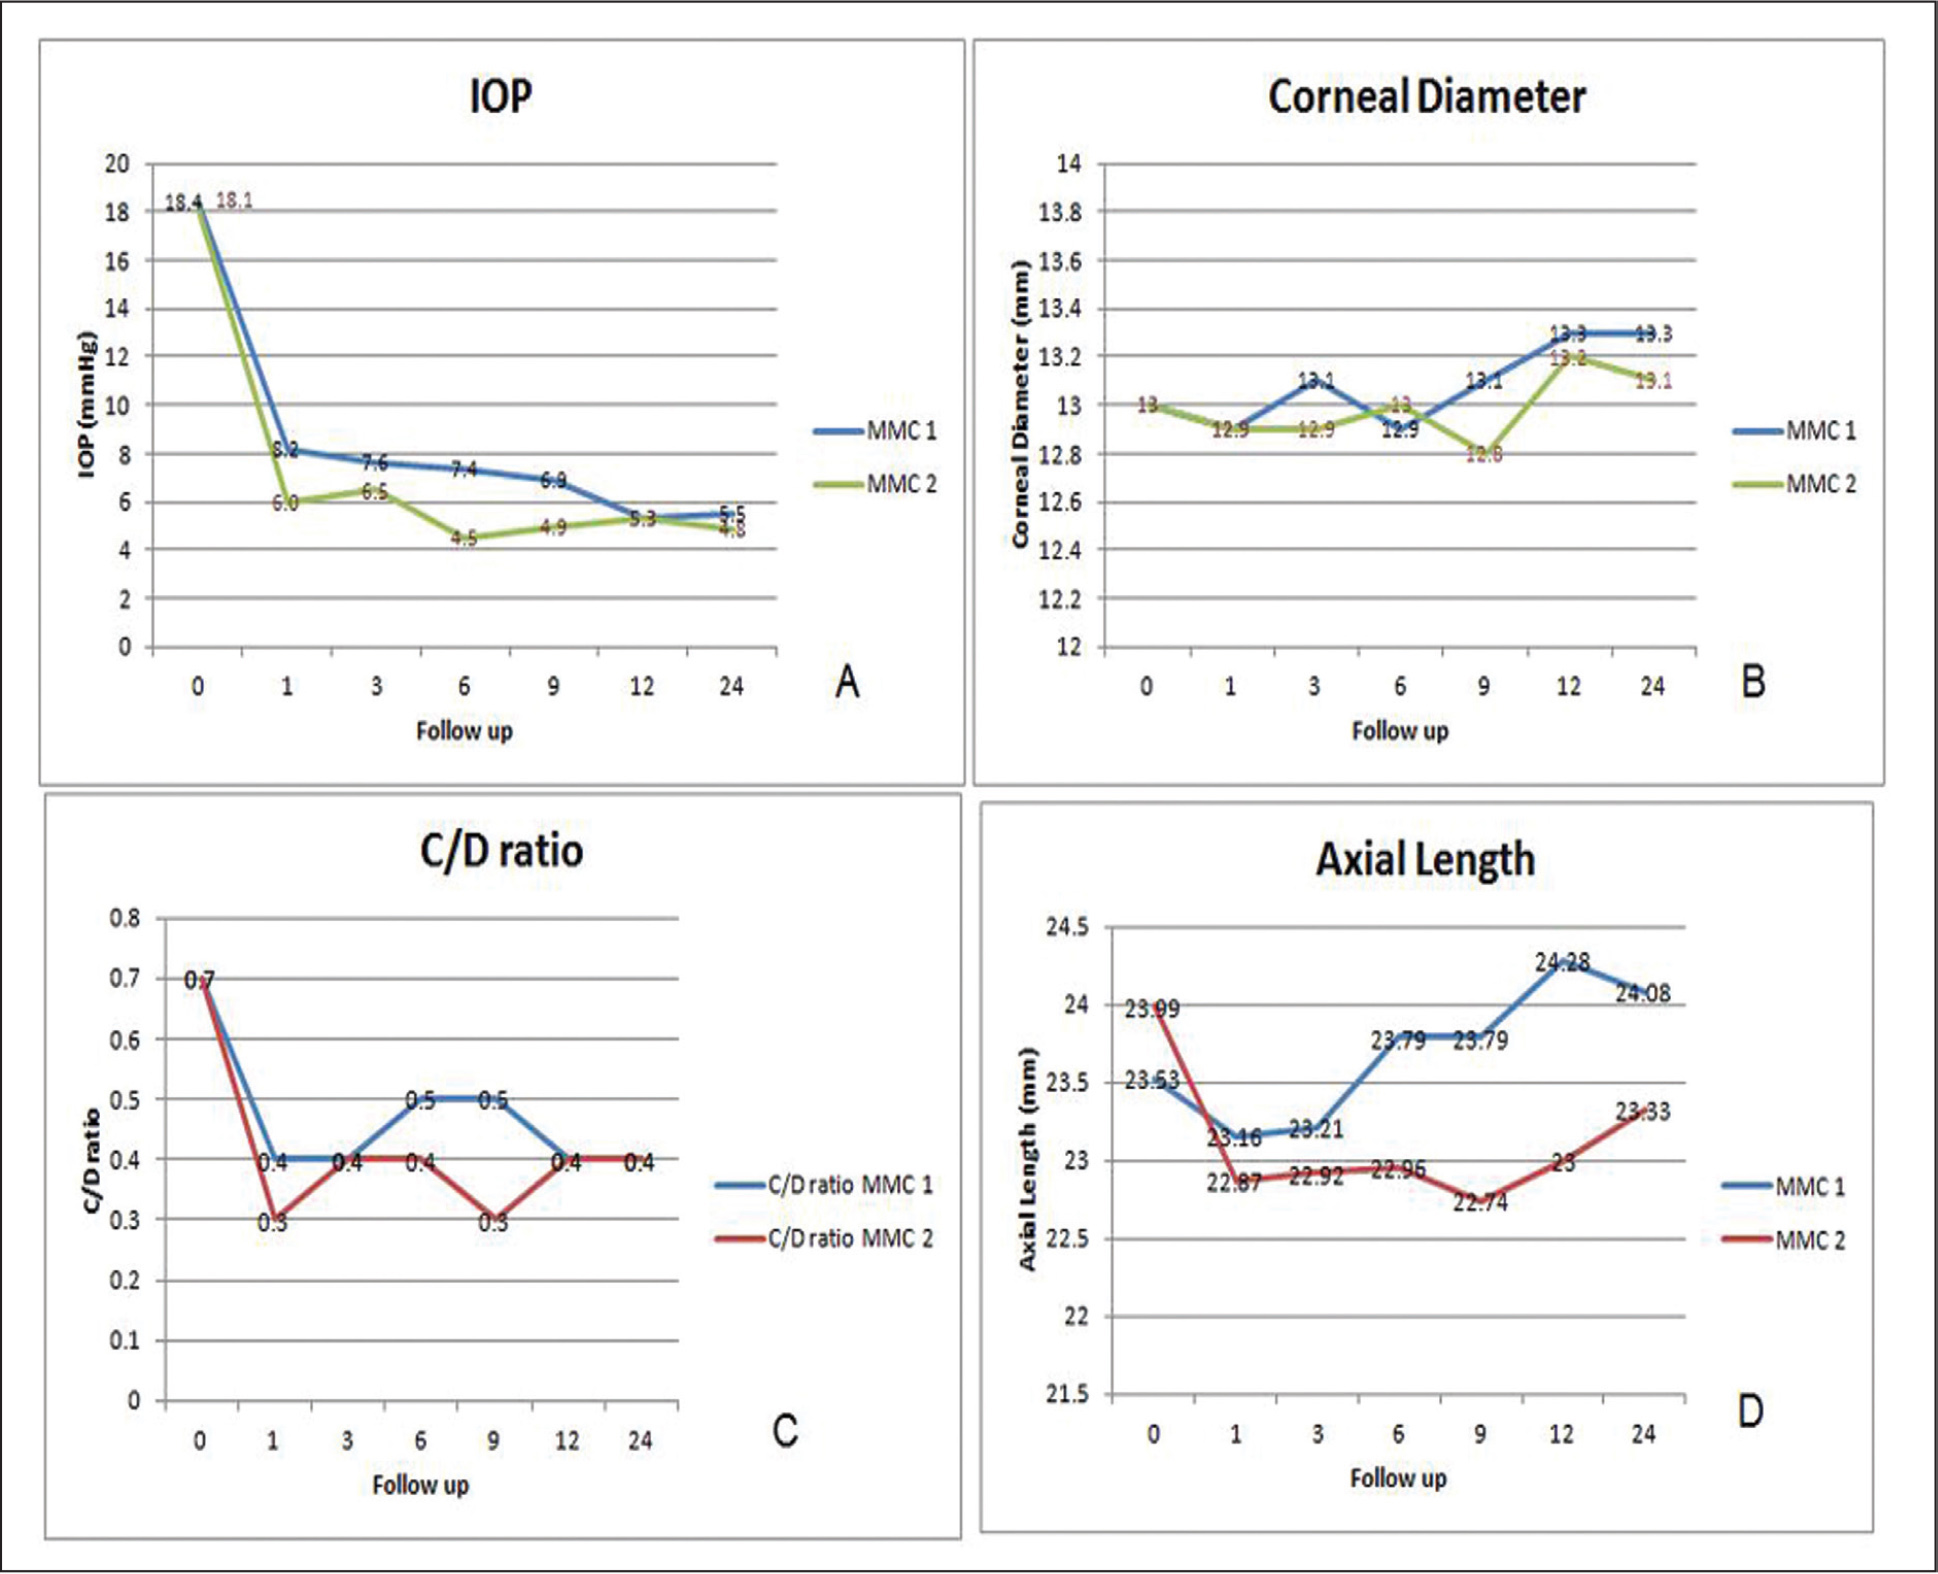 Composite image demonstrating line graphs of the clinical examination data of the included eyes with successful initial surgical procedure. IOP = intraocular pressure; MMC 1 group = patients who underwent combined trabeculotomy–trabeculectomy with intraoperative mitomycin C application for 1 minute; MMC 2 group = patients who underwent combined trabeculotomy–trabeculectomy with intraoperative mitomycin C application for 2 minutes; C/D = cup–disc